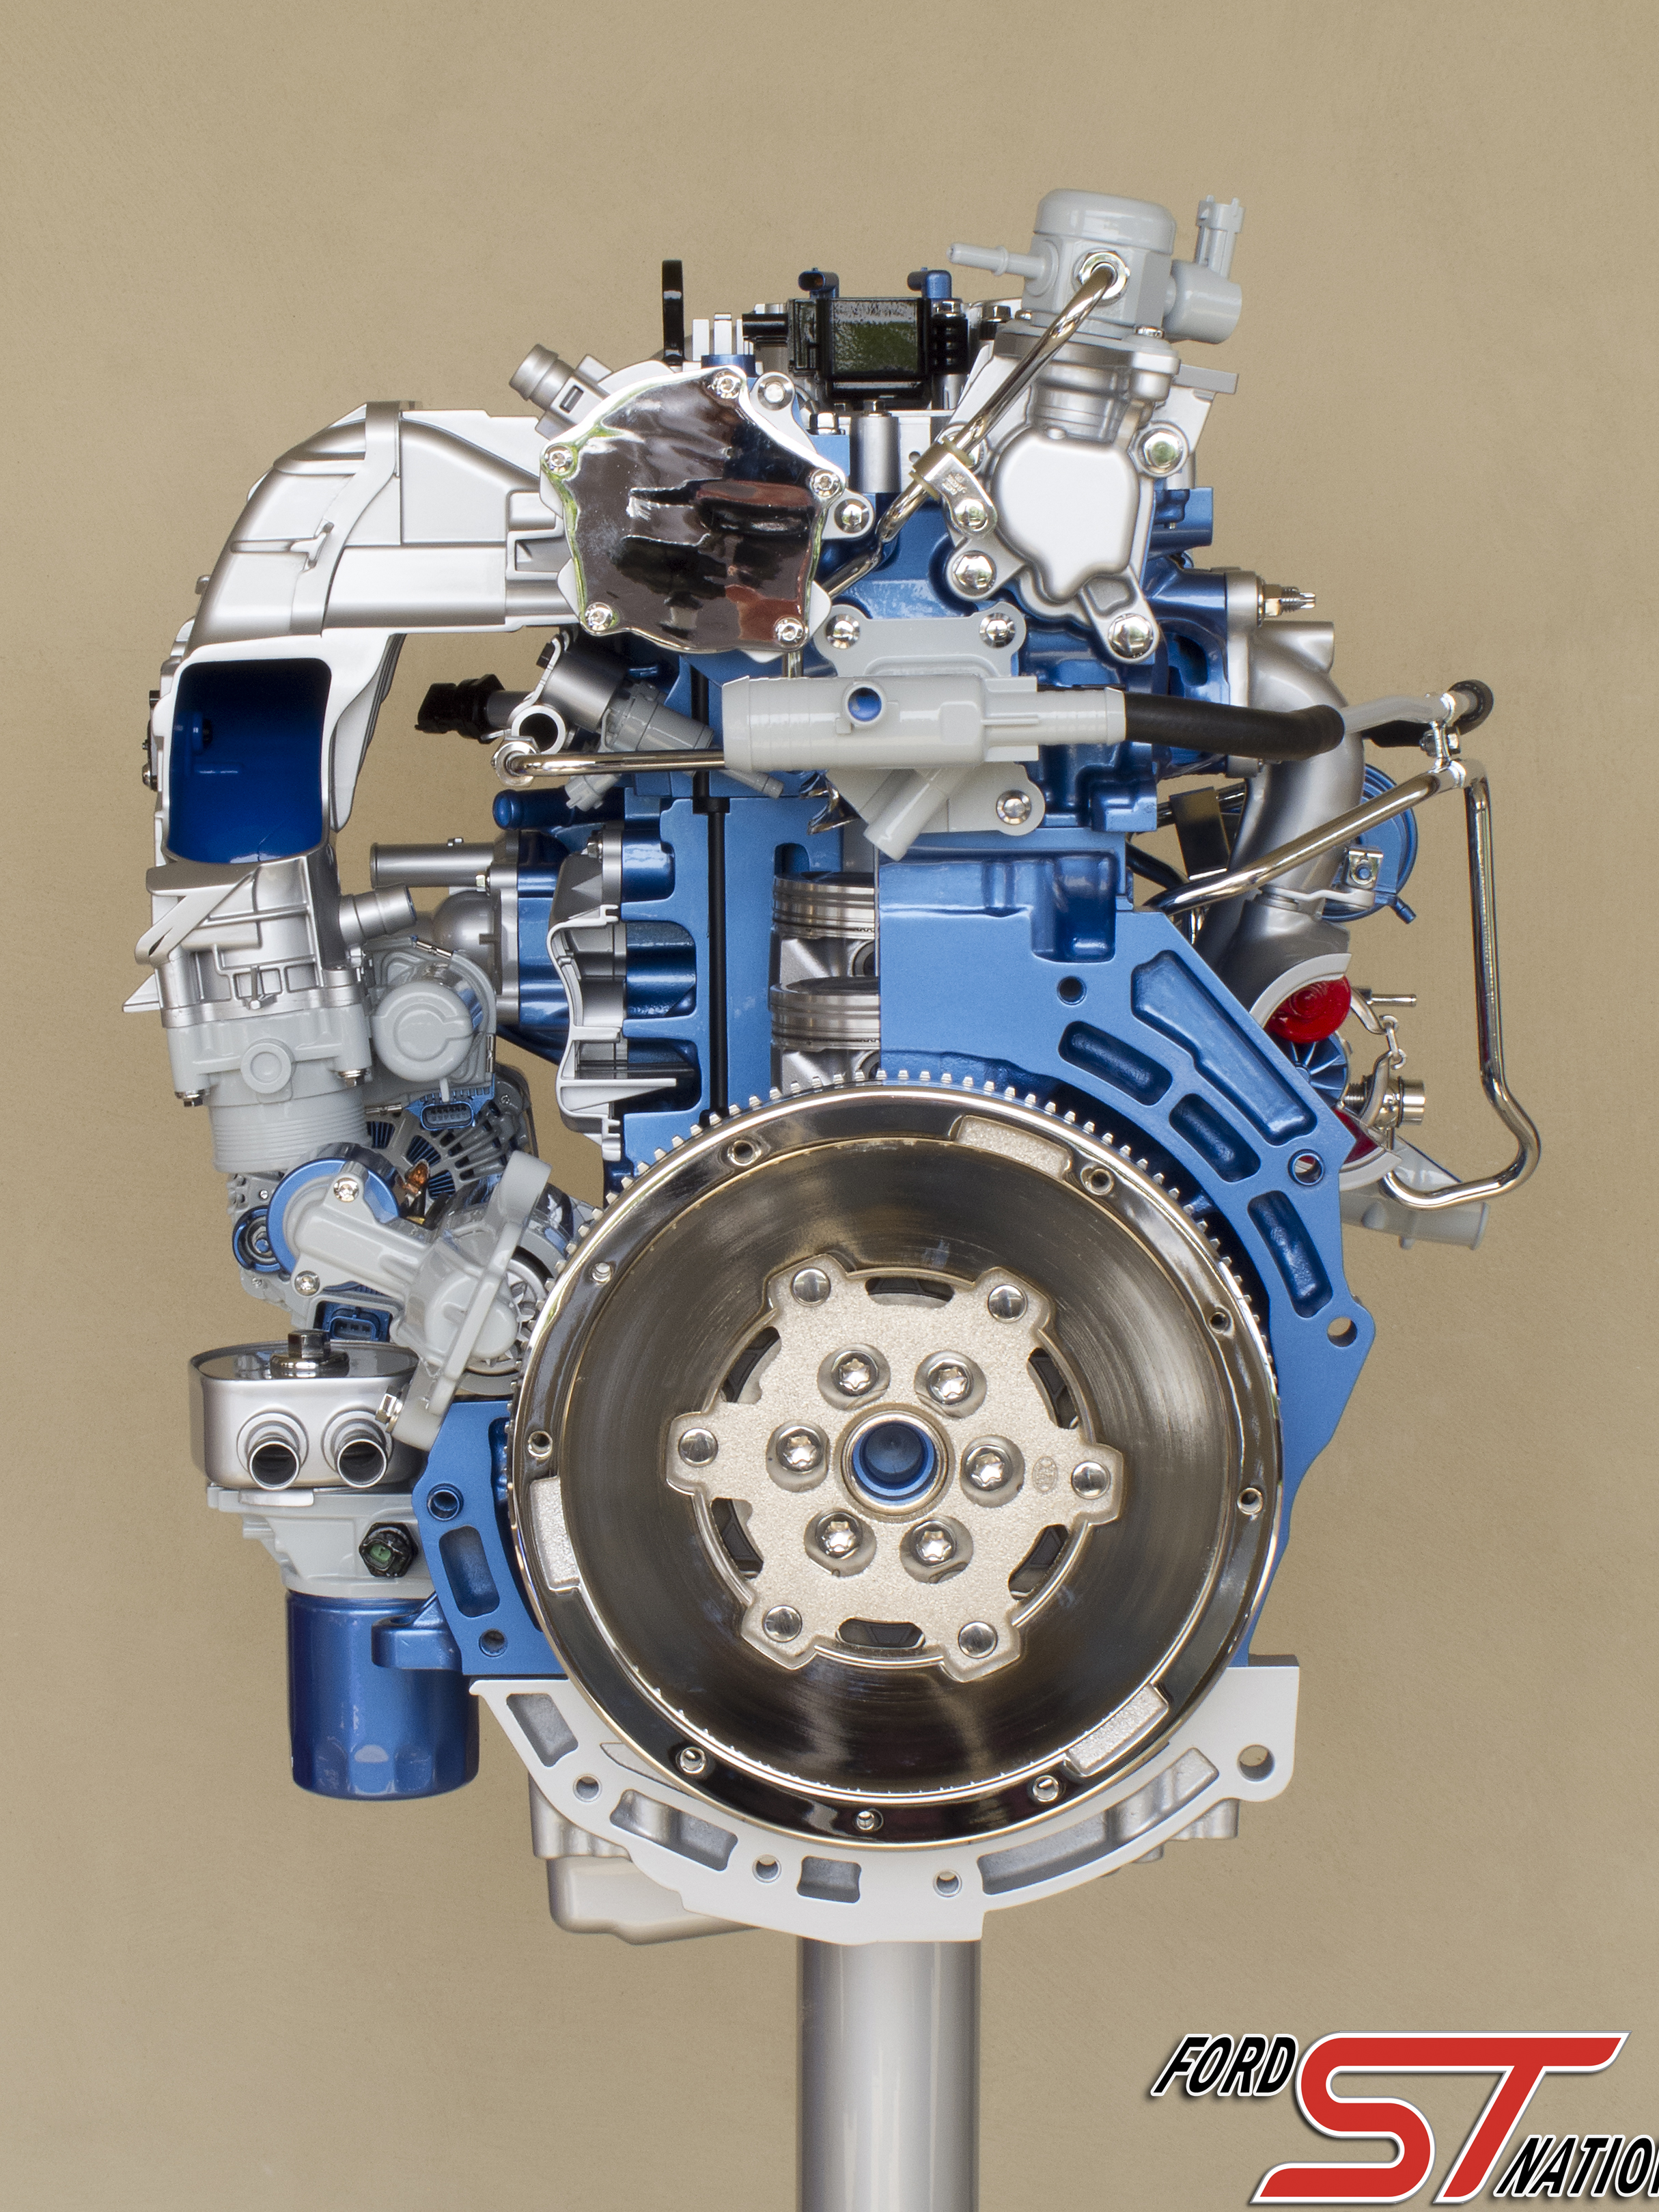 ... 0l-ecoboost-engine-picture2111-ford-focus-st-ecoboost-engine-15.html